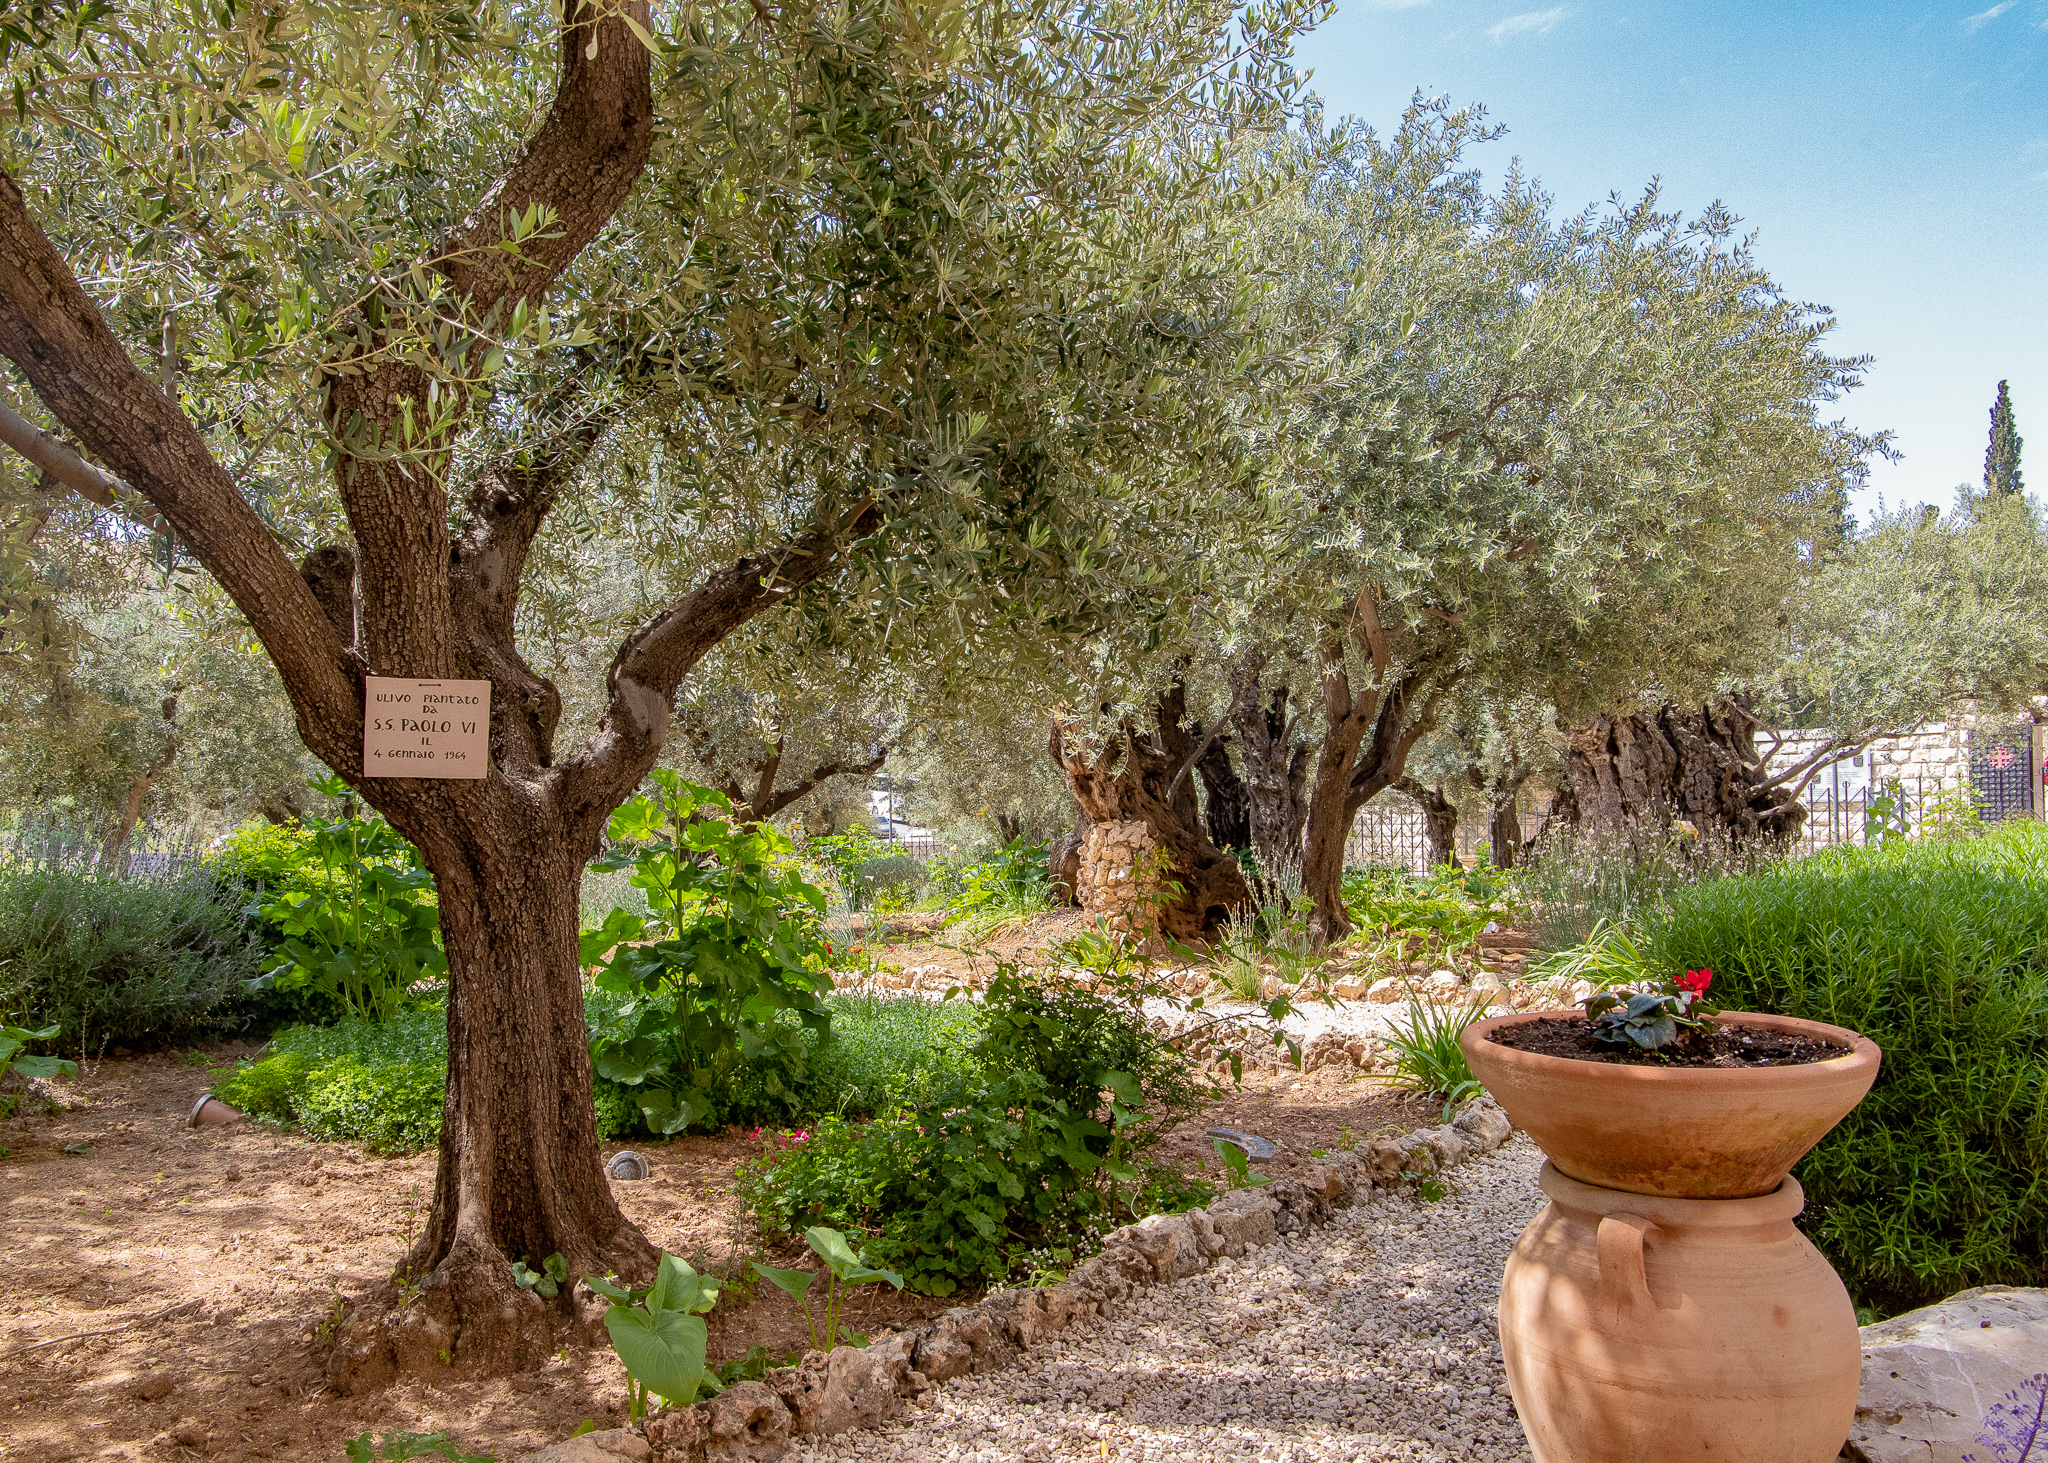 Ancient olive trees (towards the back) in the Garden of Gethsemane